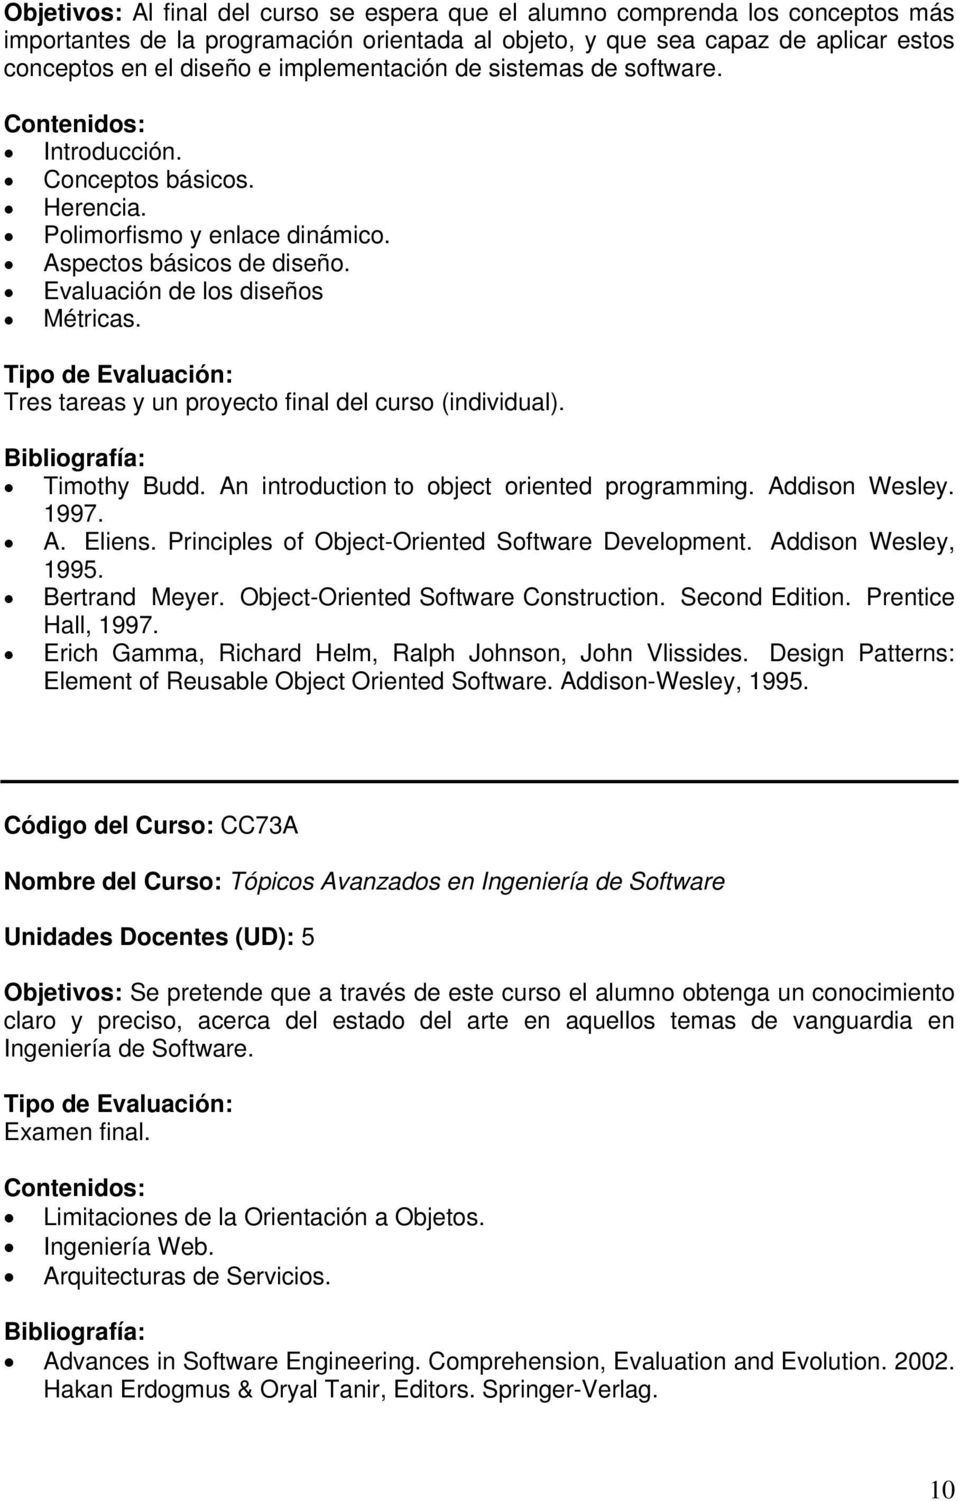 Tres tareas y un proyecto final del curso (individual). Timothy Budd. An introduction to object oriented programming. Addison Wesley. 1997. A. Eliens.